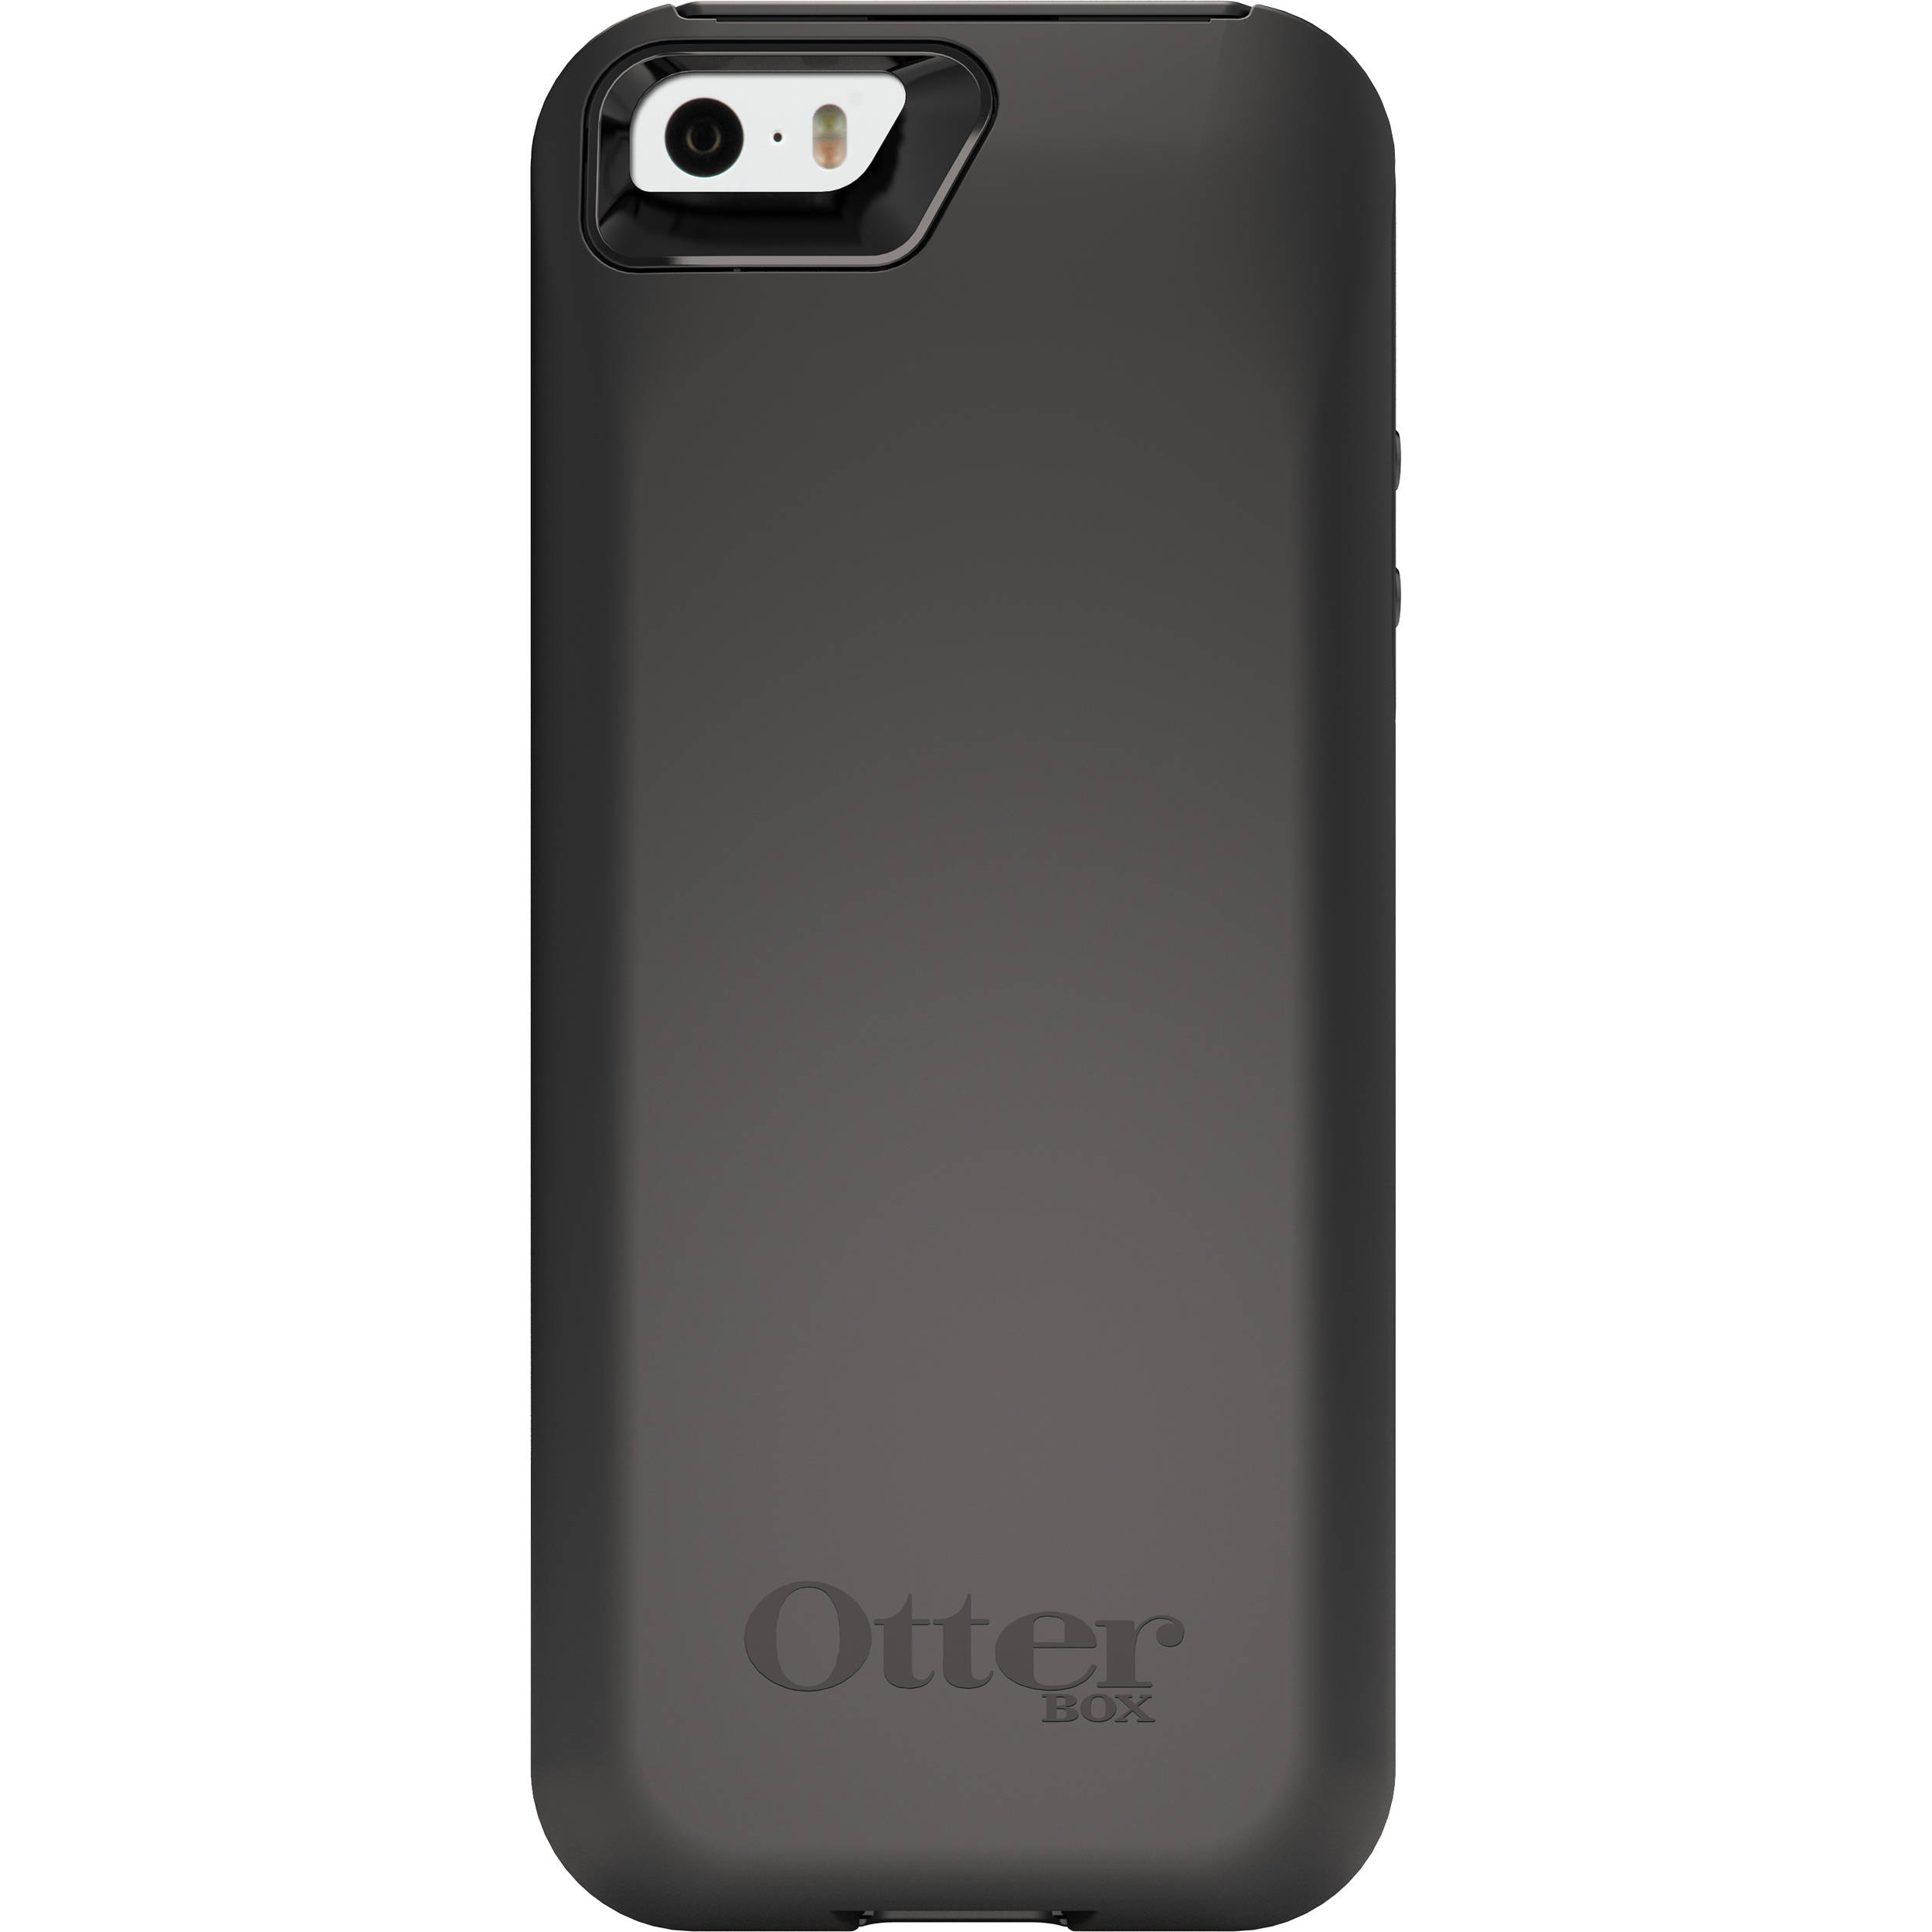 OtterBox muter Series Case for iPhone 6 Aqua Lt Teal